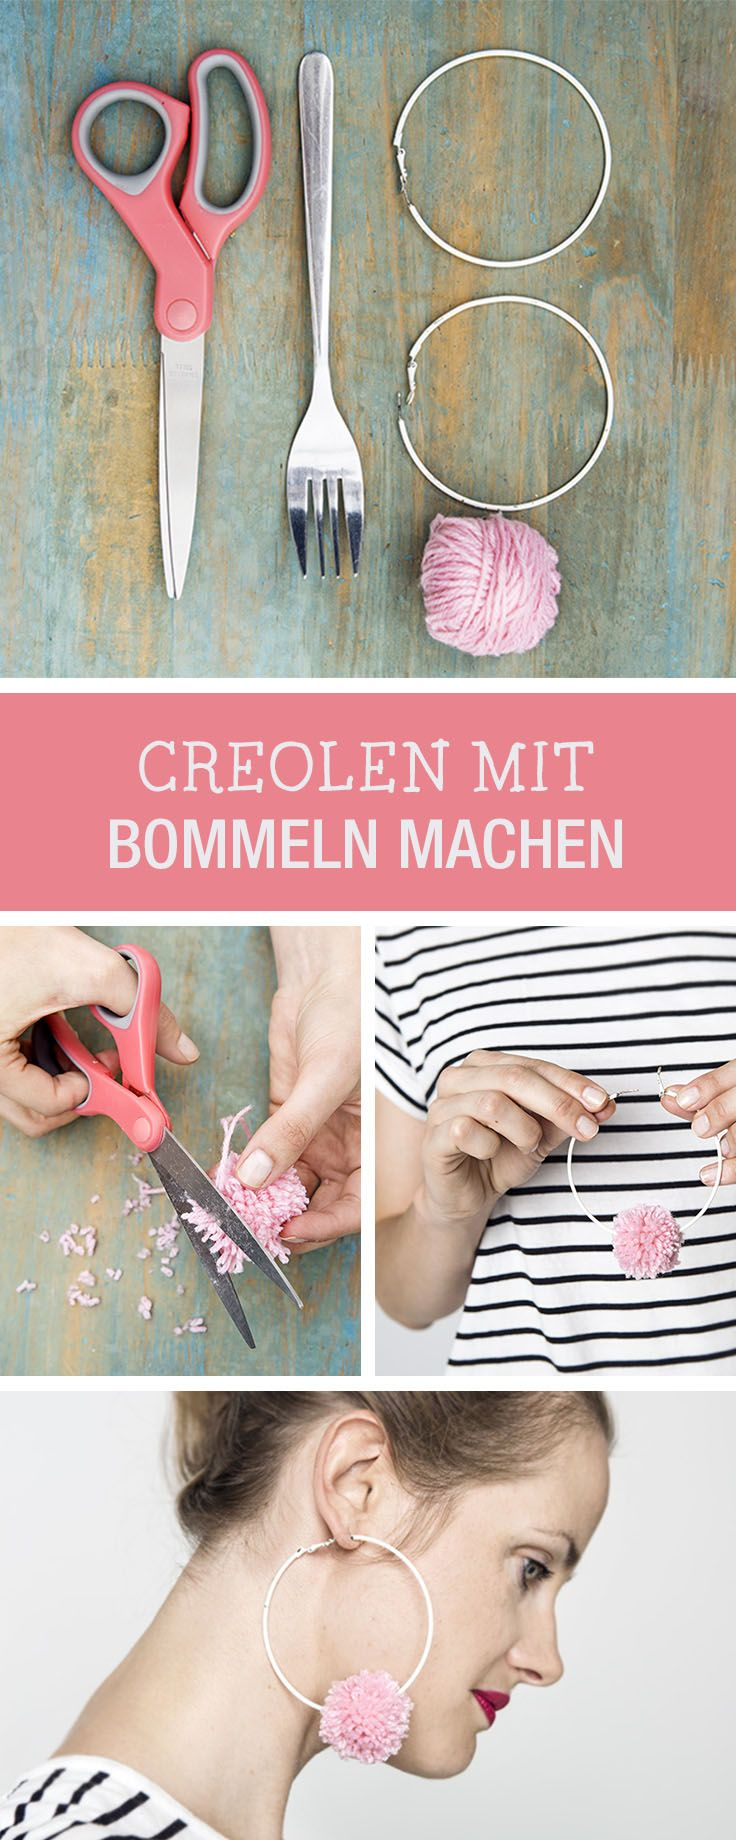 DIY-Anleitung: Süße Creolen mit Bommeln machen, bring die 90er Jahre zurück / DIY tutorial: crafting cute creoles with pom poms, bringing the 90s back via DaWanda.com